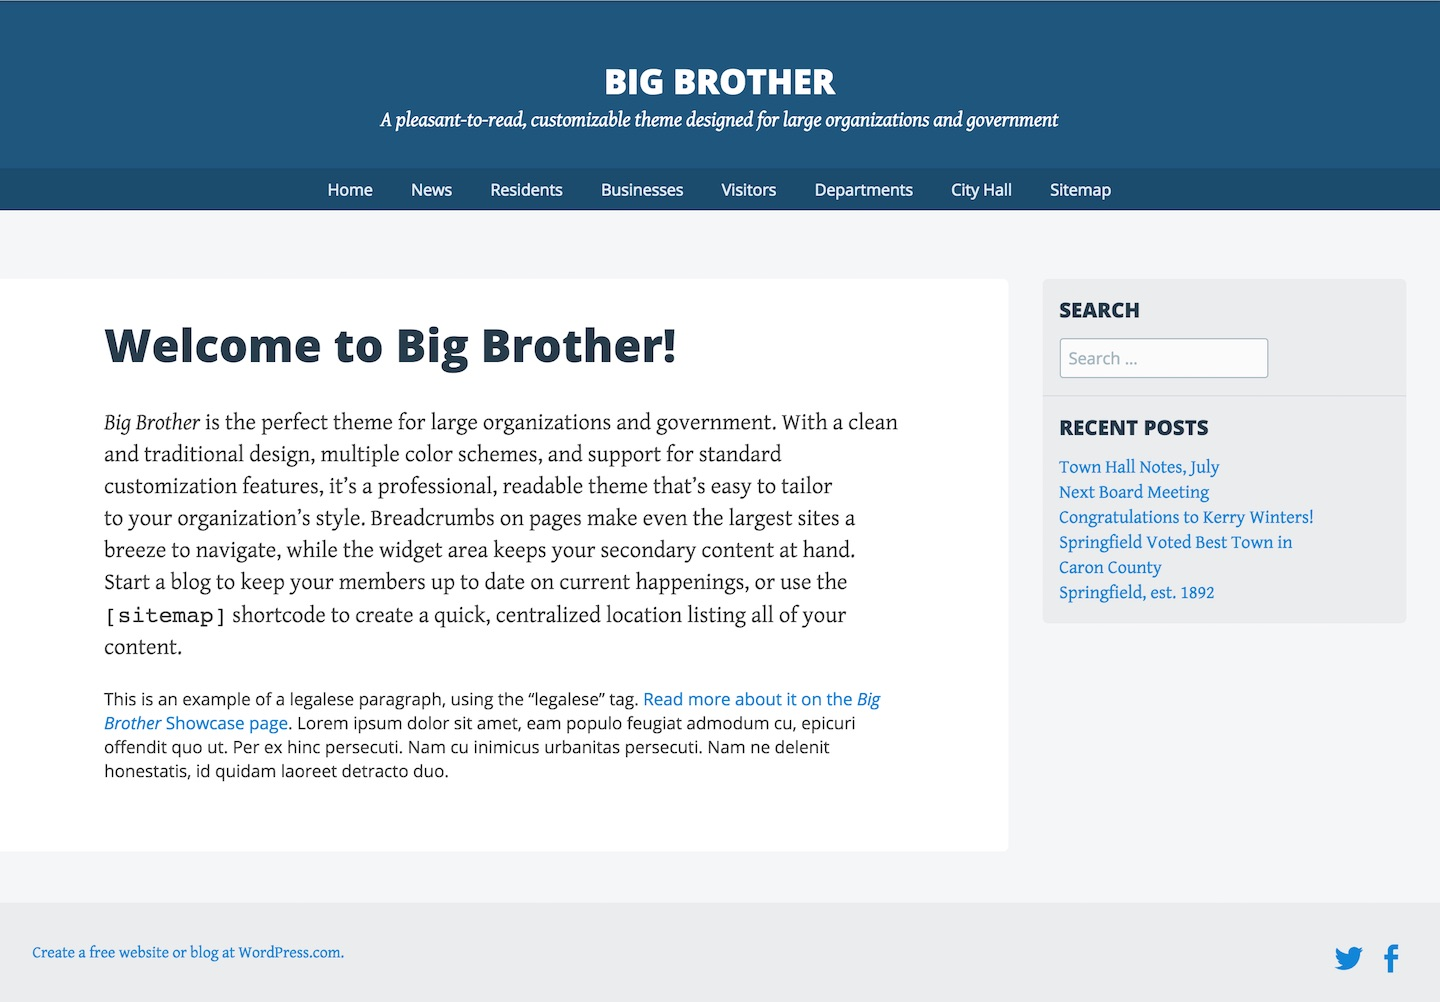 Screenshot of the Big Brother theme